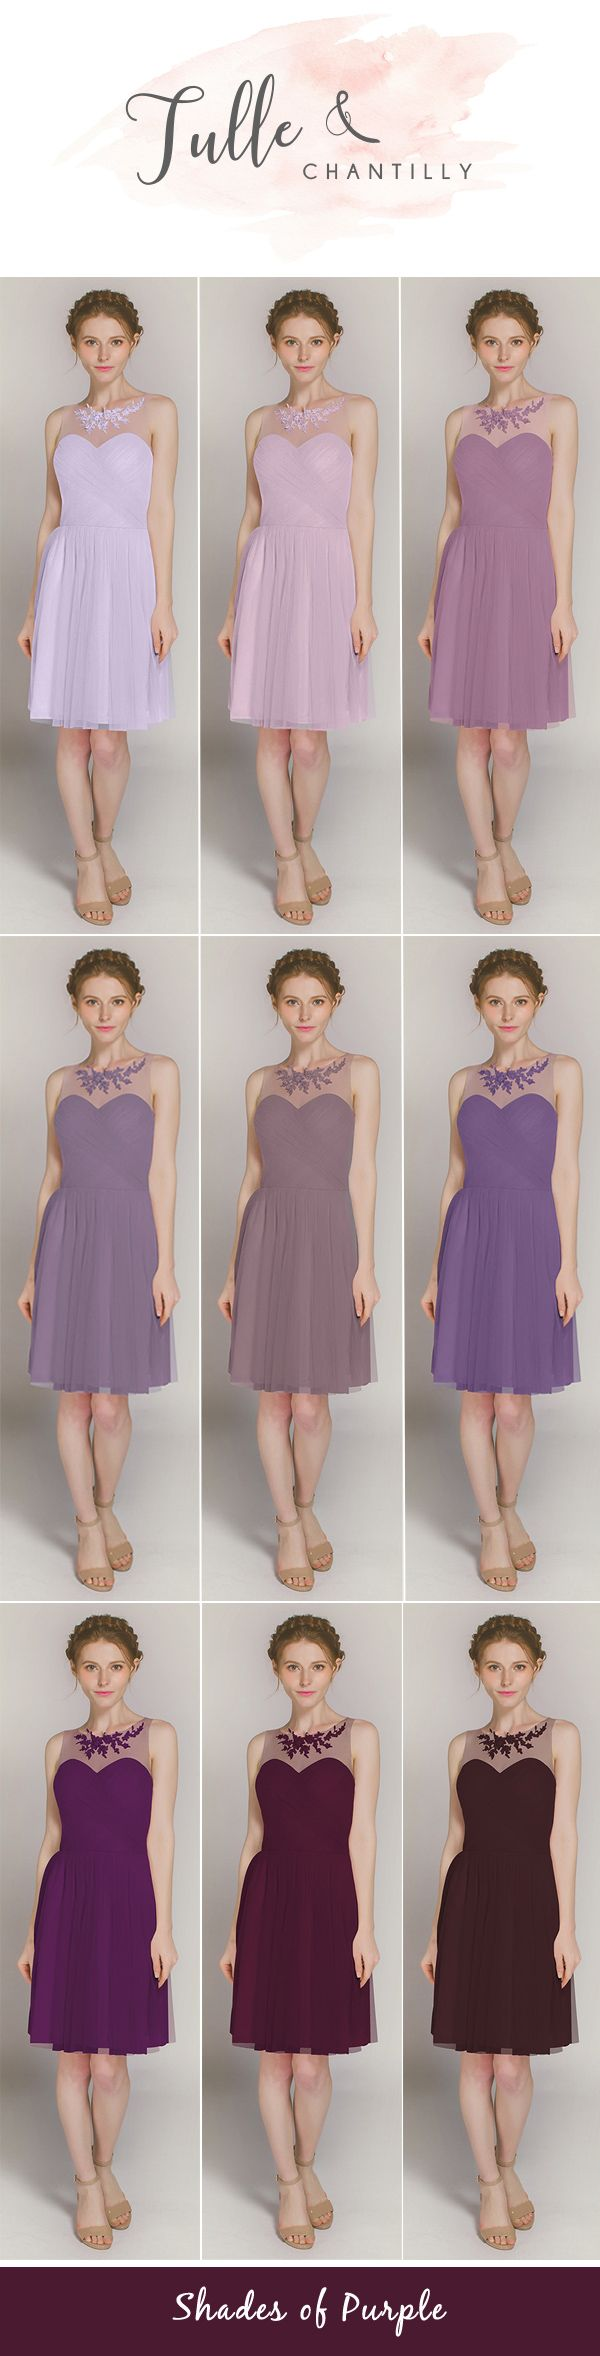 shades of purple short tulle bridesmaid dress with lace details